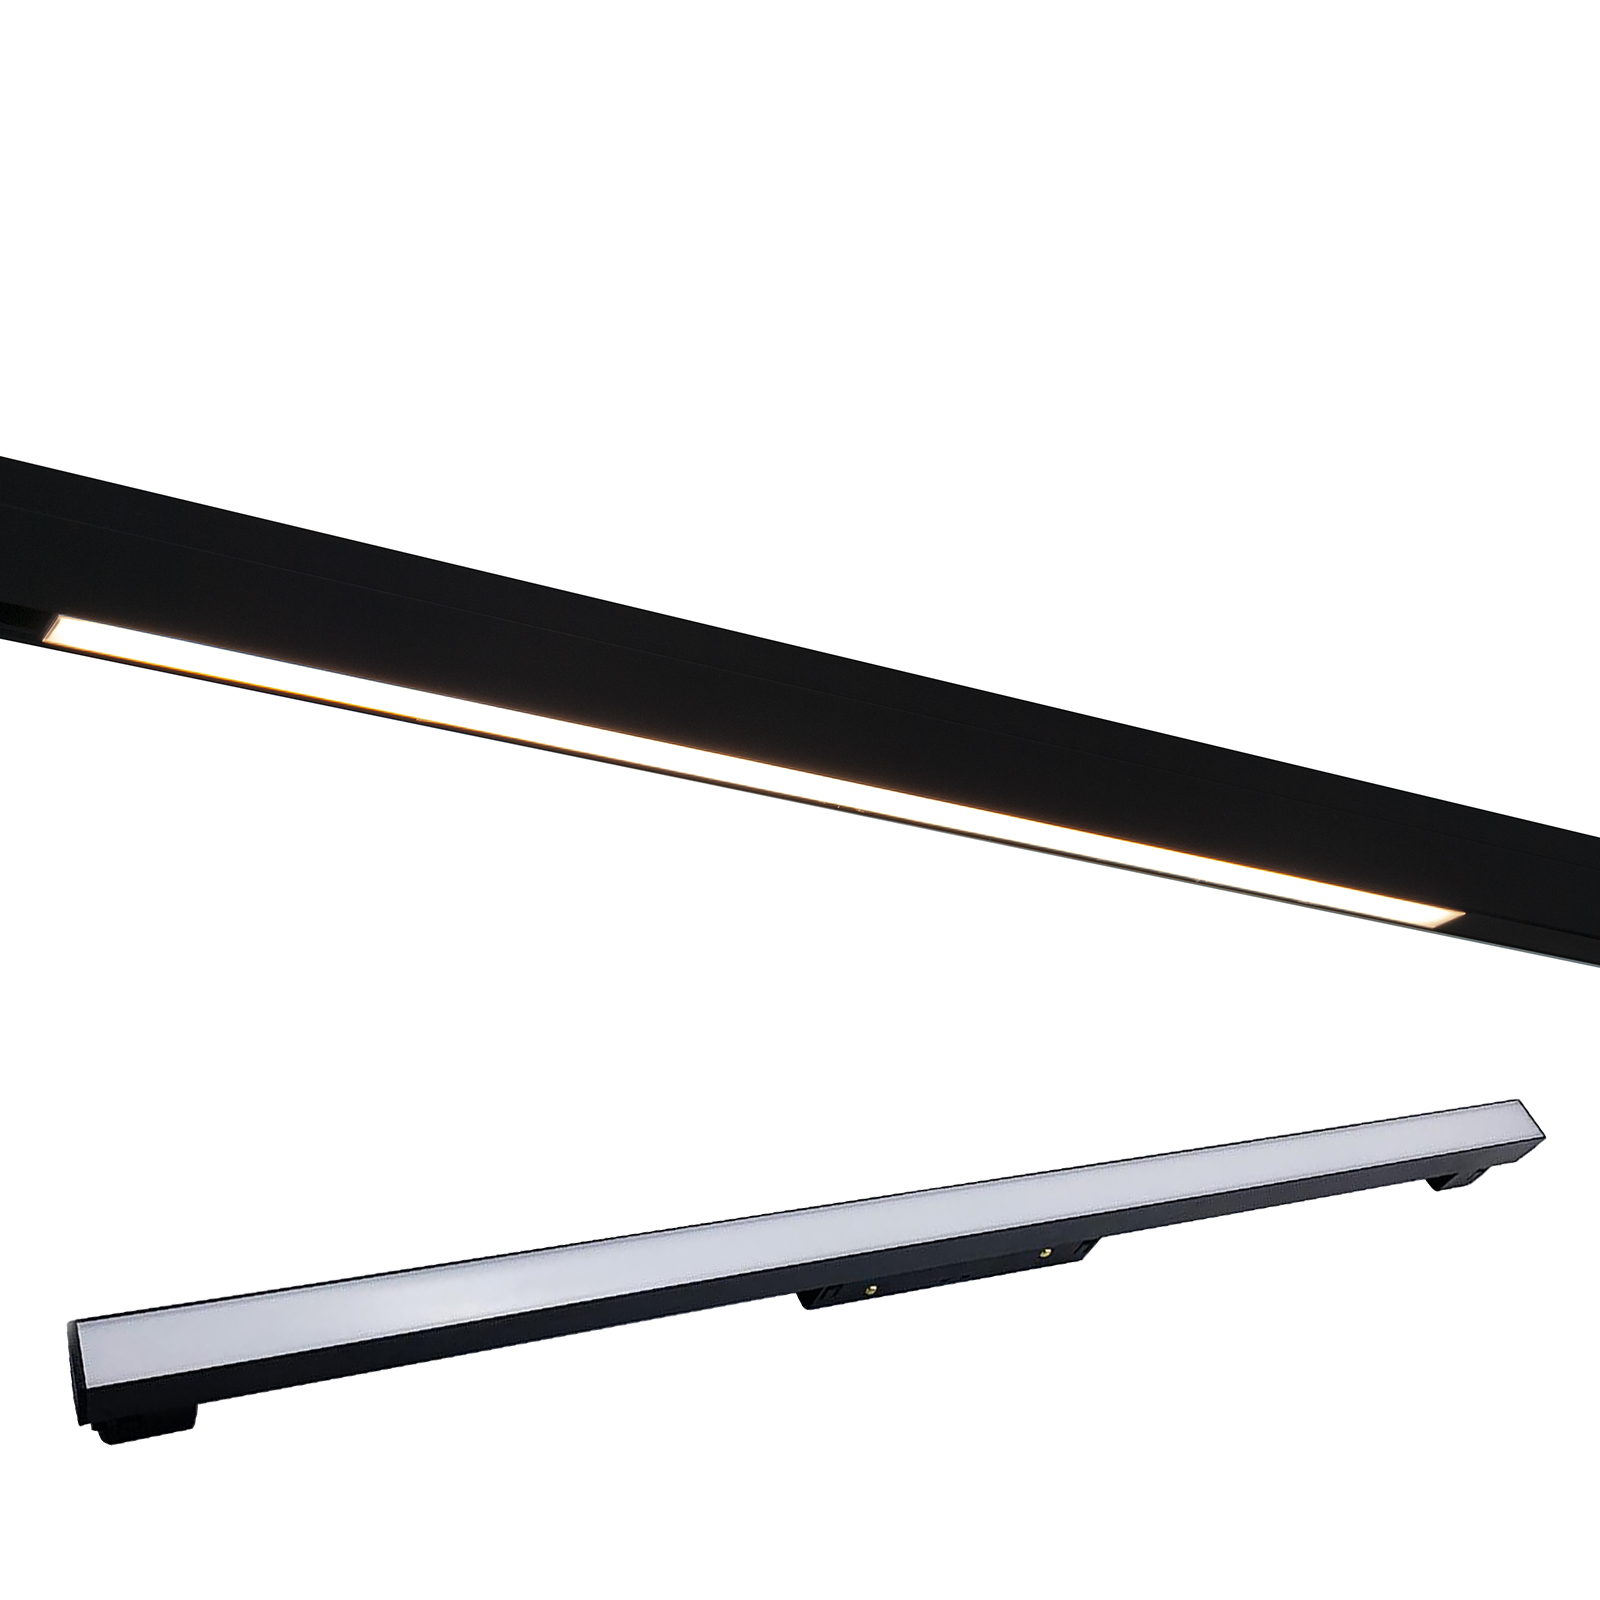 Magnetic track spotlight LED 20W 48V track slim bar interior light shop 60cm